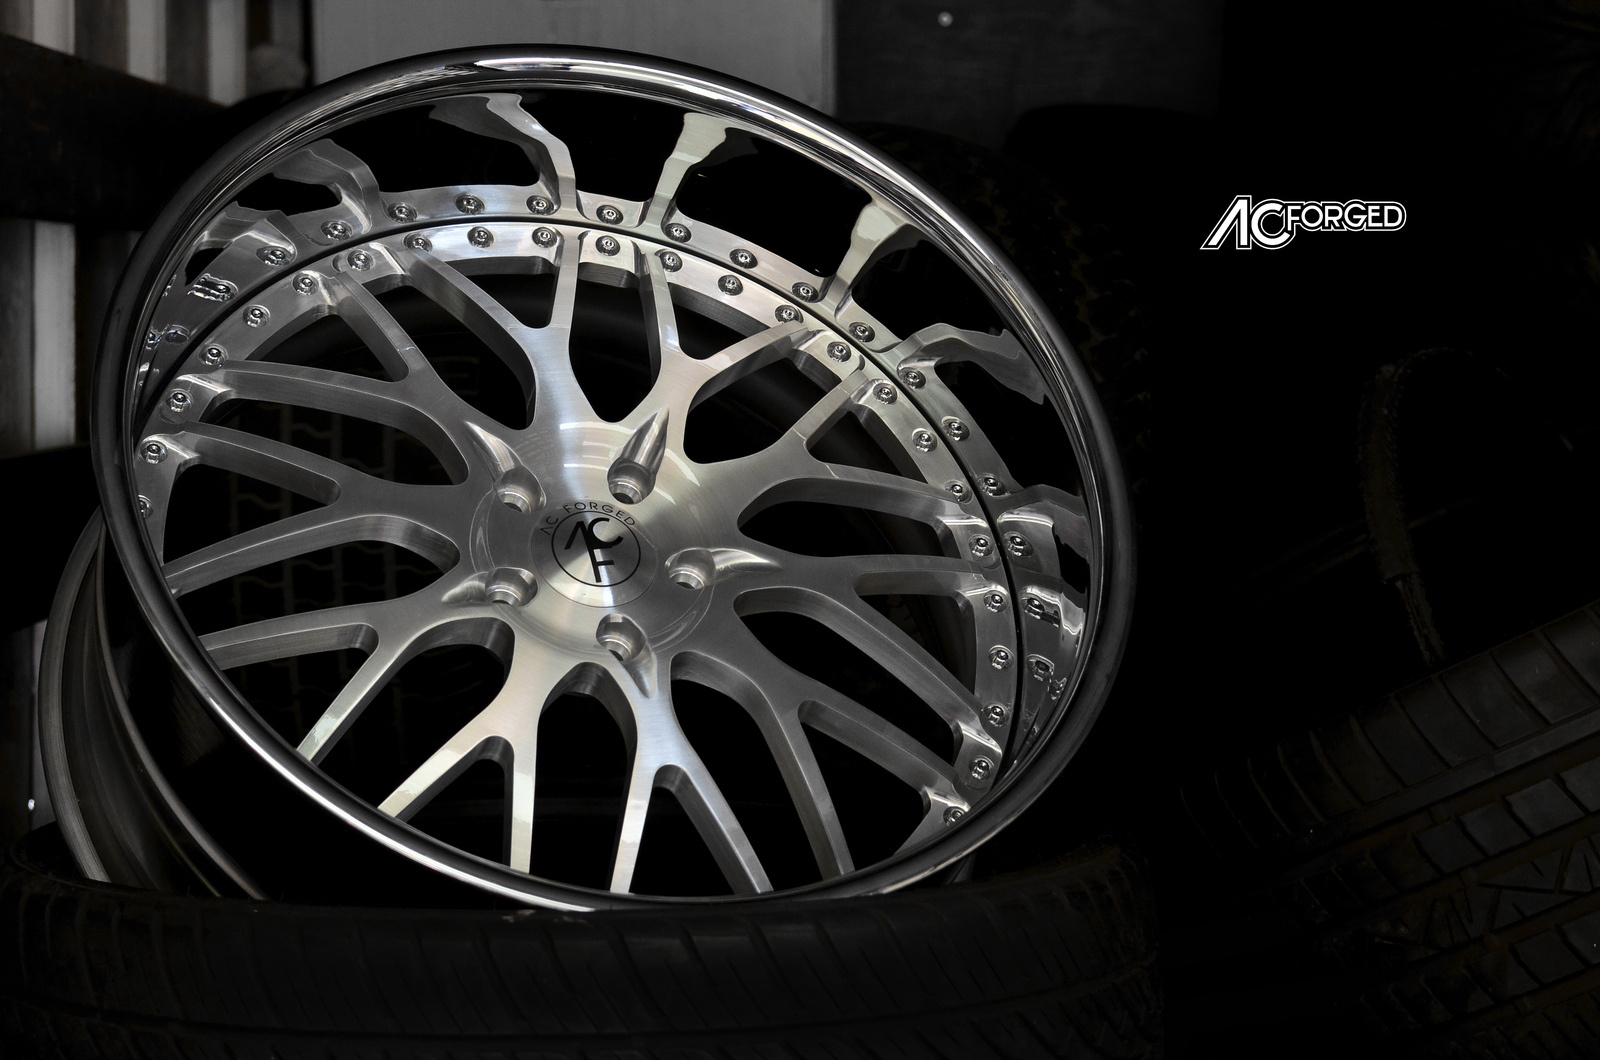 24 wheels chrome -  Ac Forged 313 Brush Face Chrome Lip 3 Piece Forged